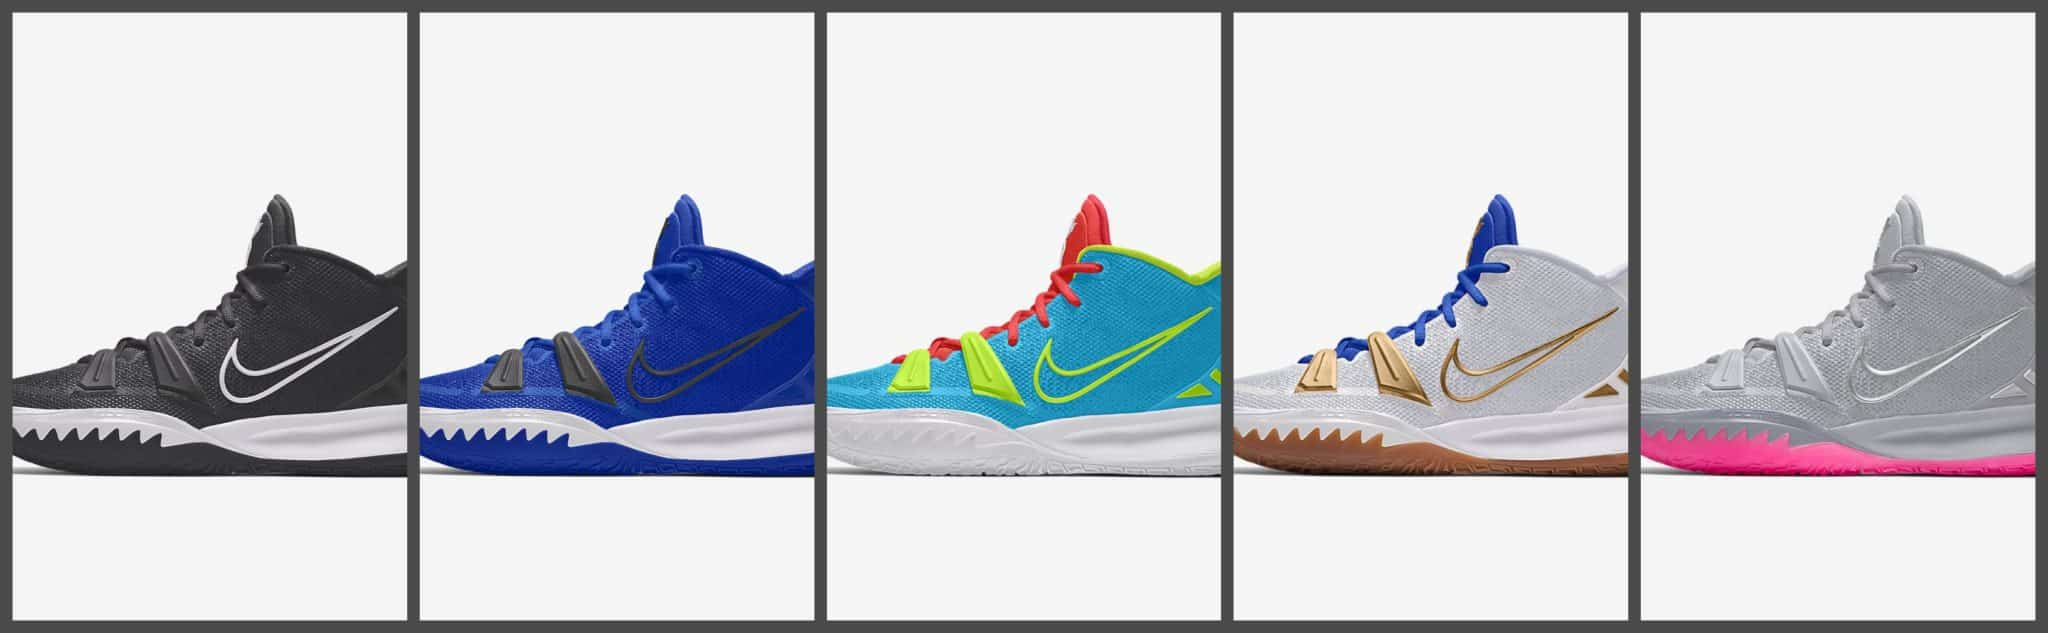 """Kyrie 7 """"by you"""" collage"""